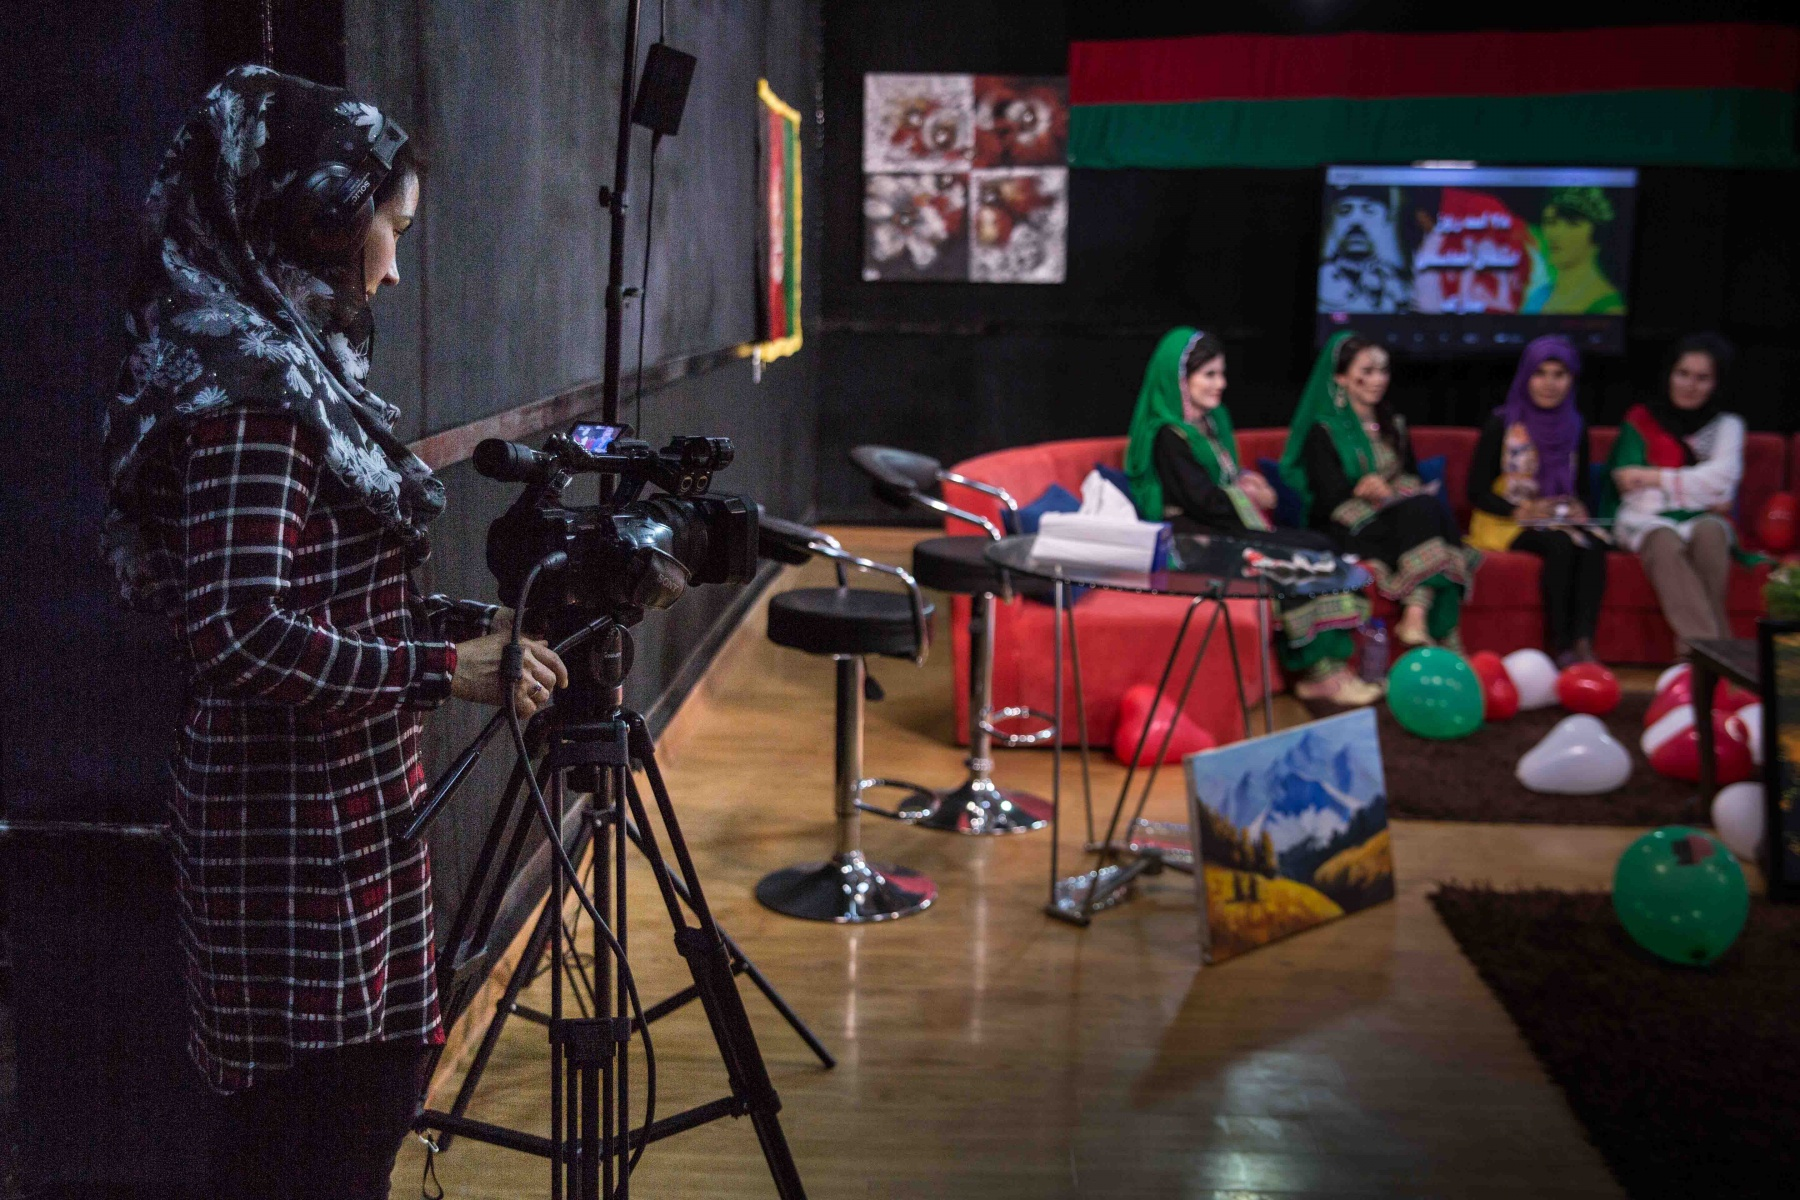 Mari Asifi, the camerawoman films footage for  the morning show Bamshad at Zan TV. The tv channel employs more than 50 women to create its daily program, a mix of news, politics and lifestyle shows